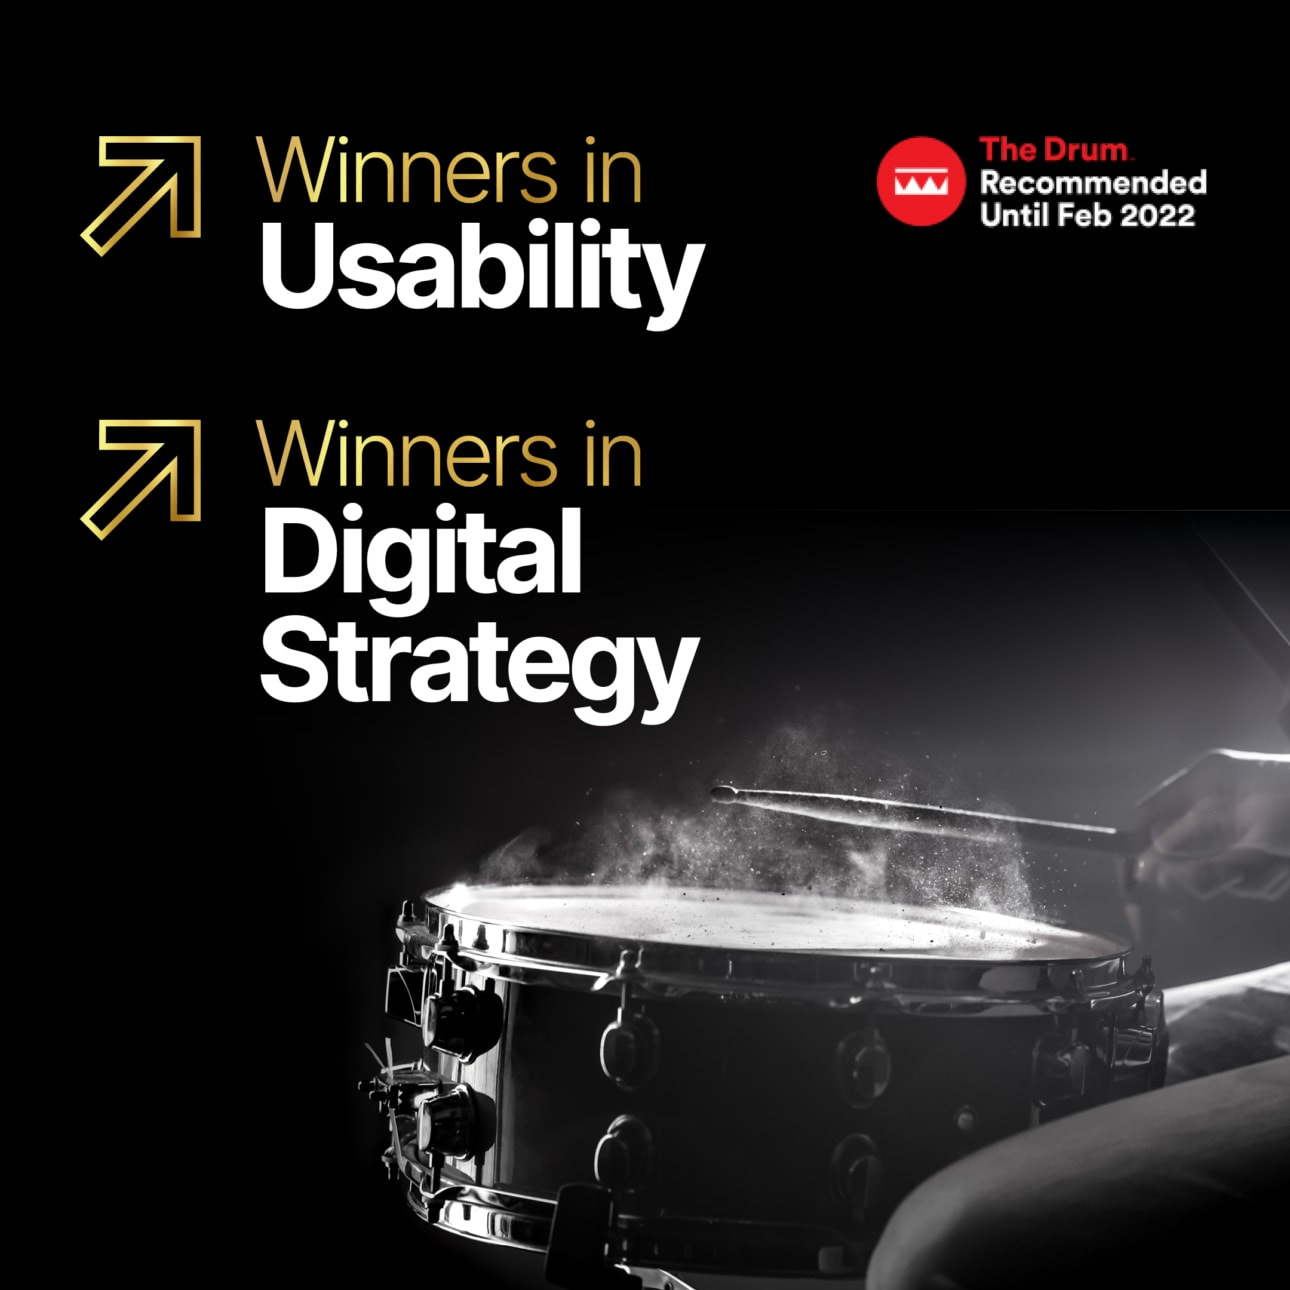 Drum - Usability and Digital Strategy Winners - Square